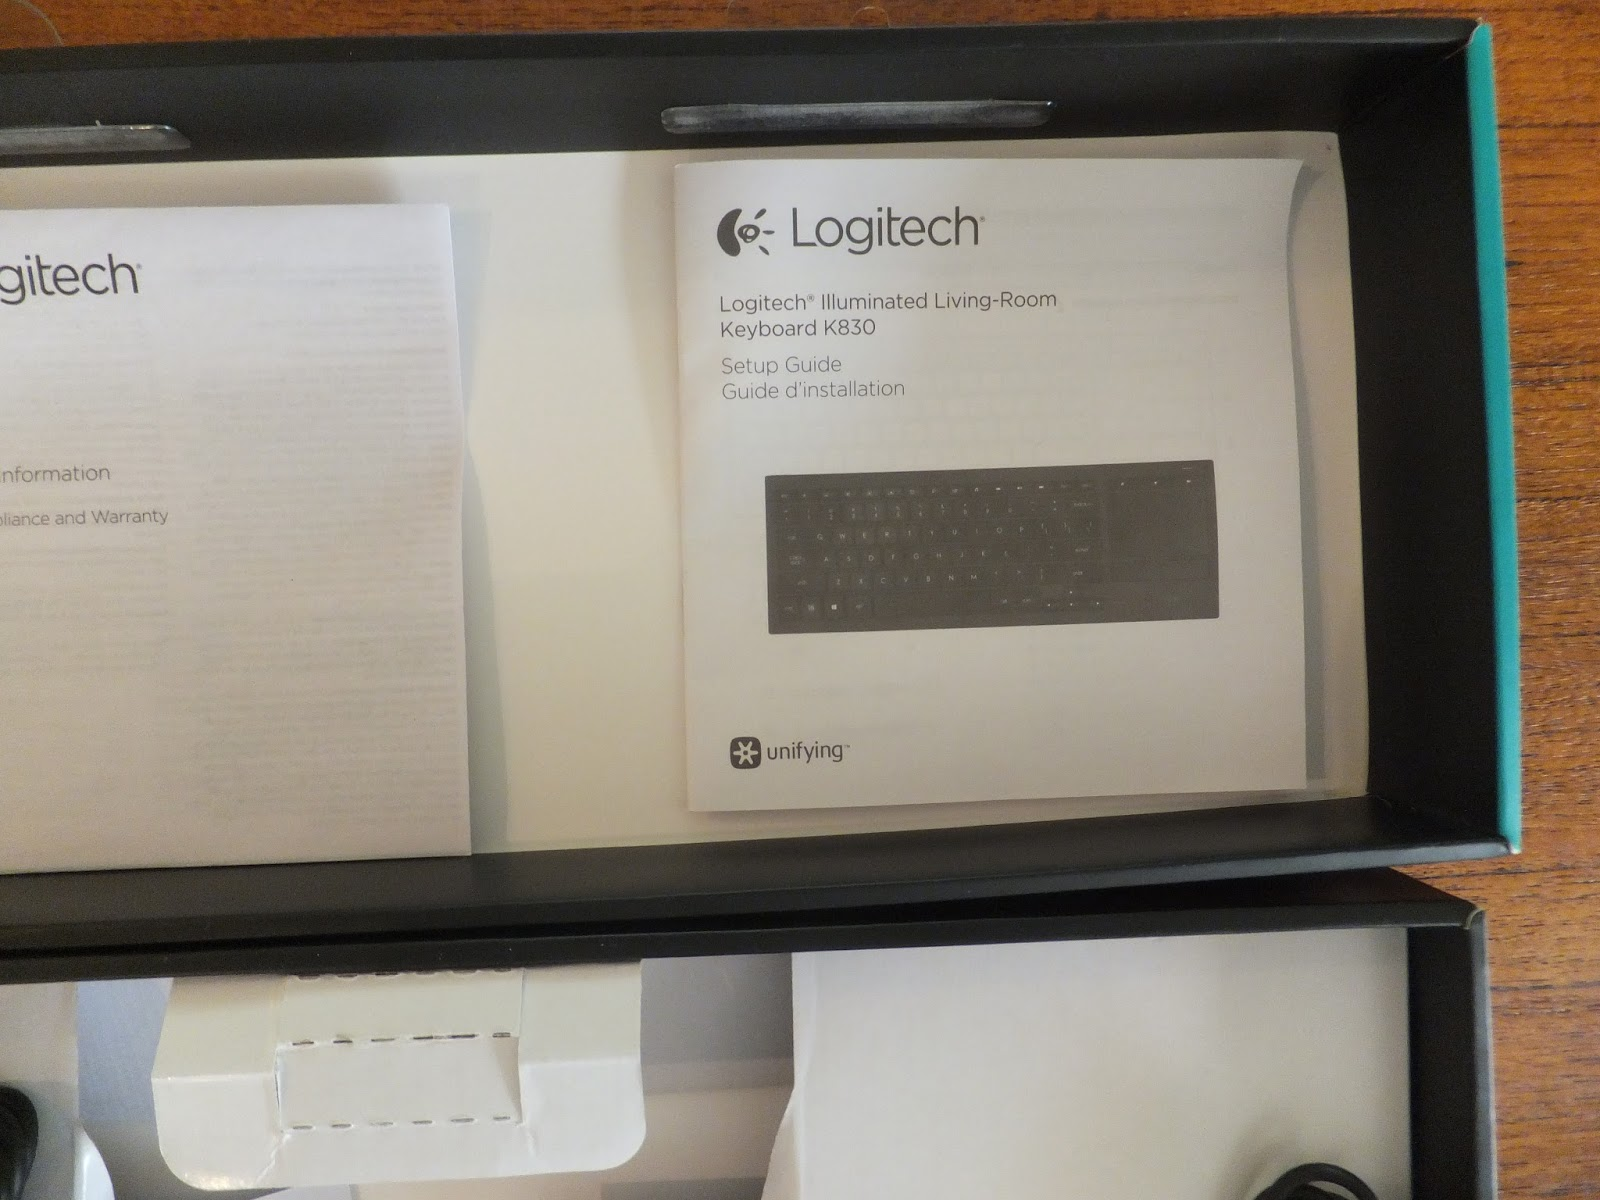 Kurt's Computer Carnival : The Logitech Illuminated Living